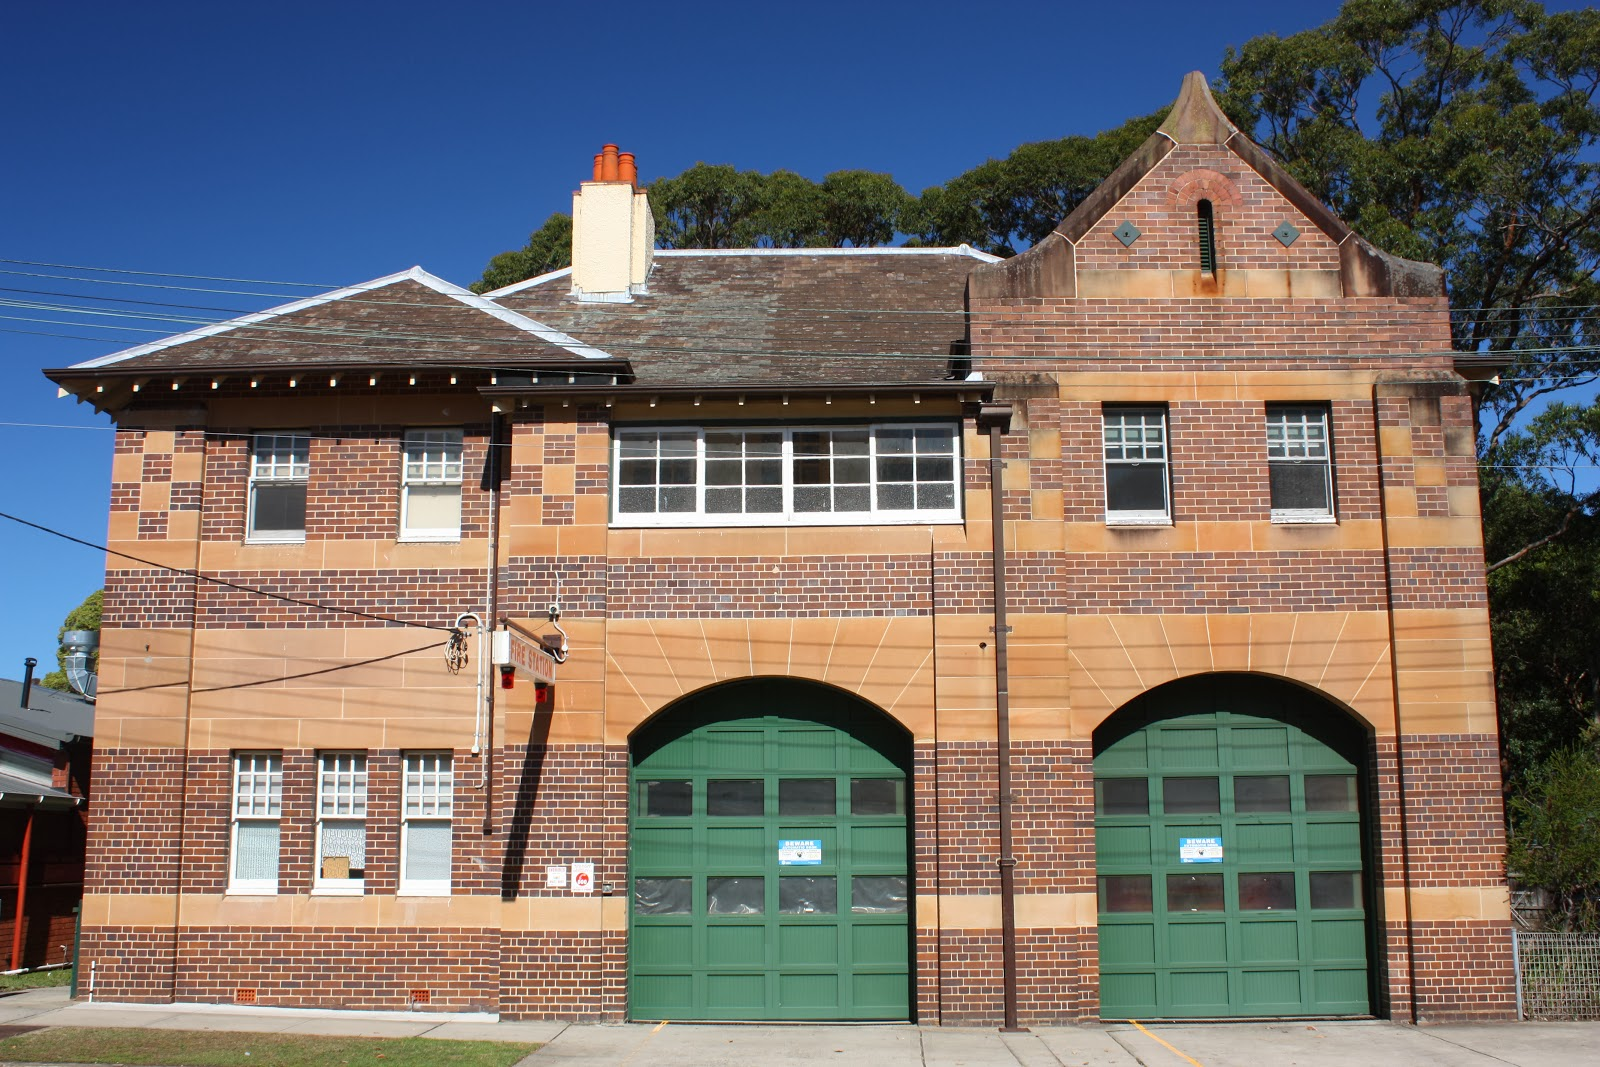 Fire Station, The Avenue, Randwick